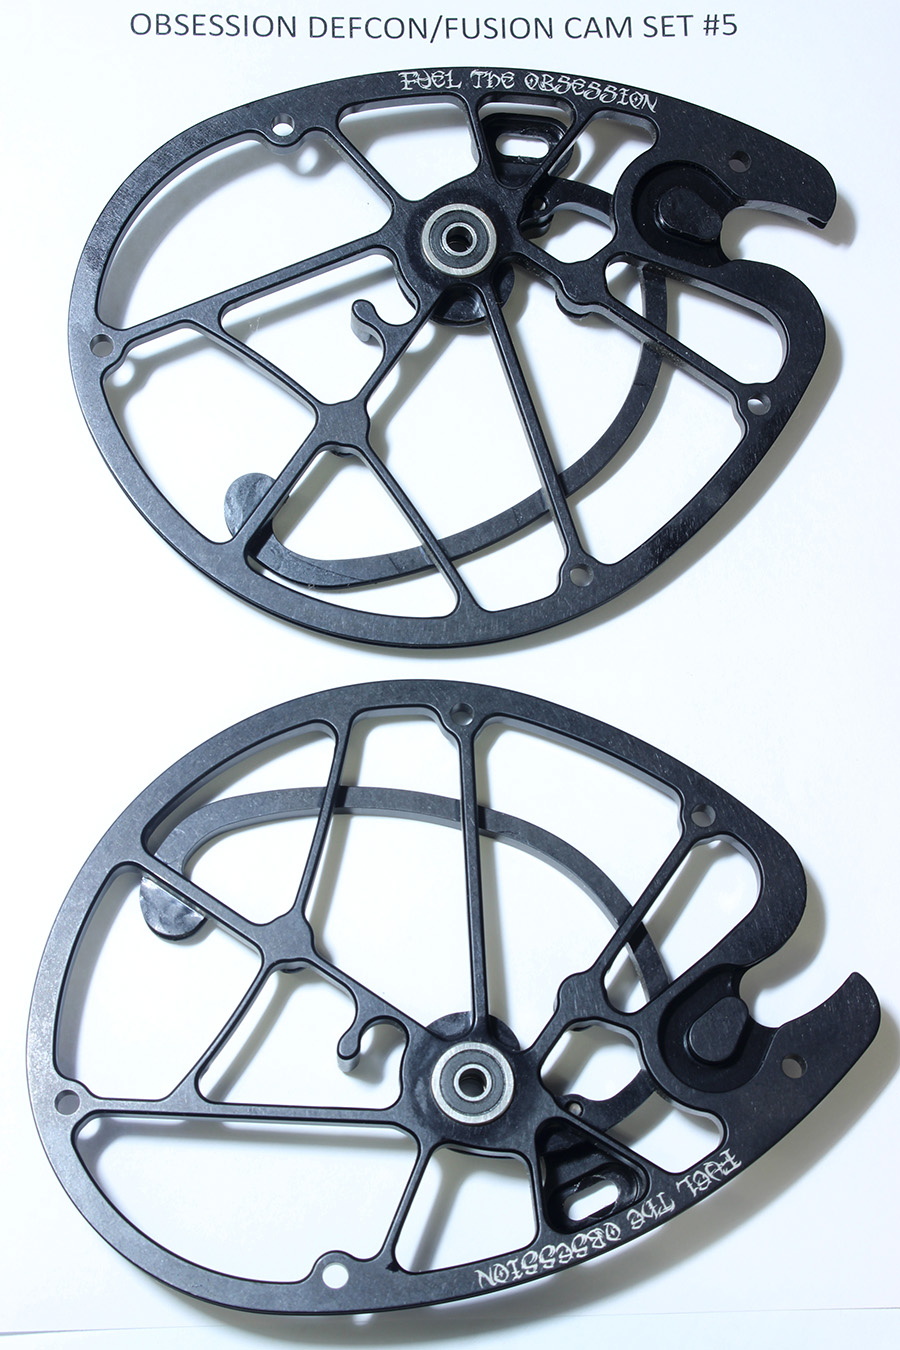 OEM Obsession Archery Defcon/Fusion 2-PC Cam Set, Size #5 (Top & Bottom)